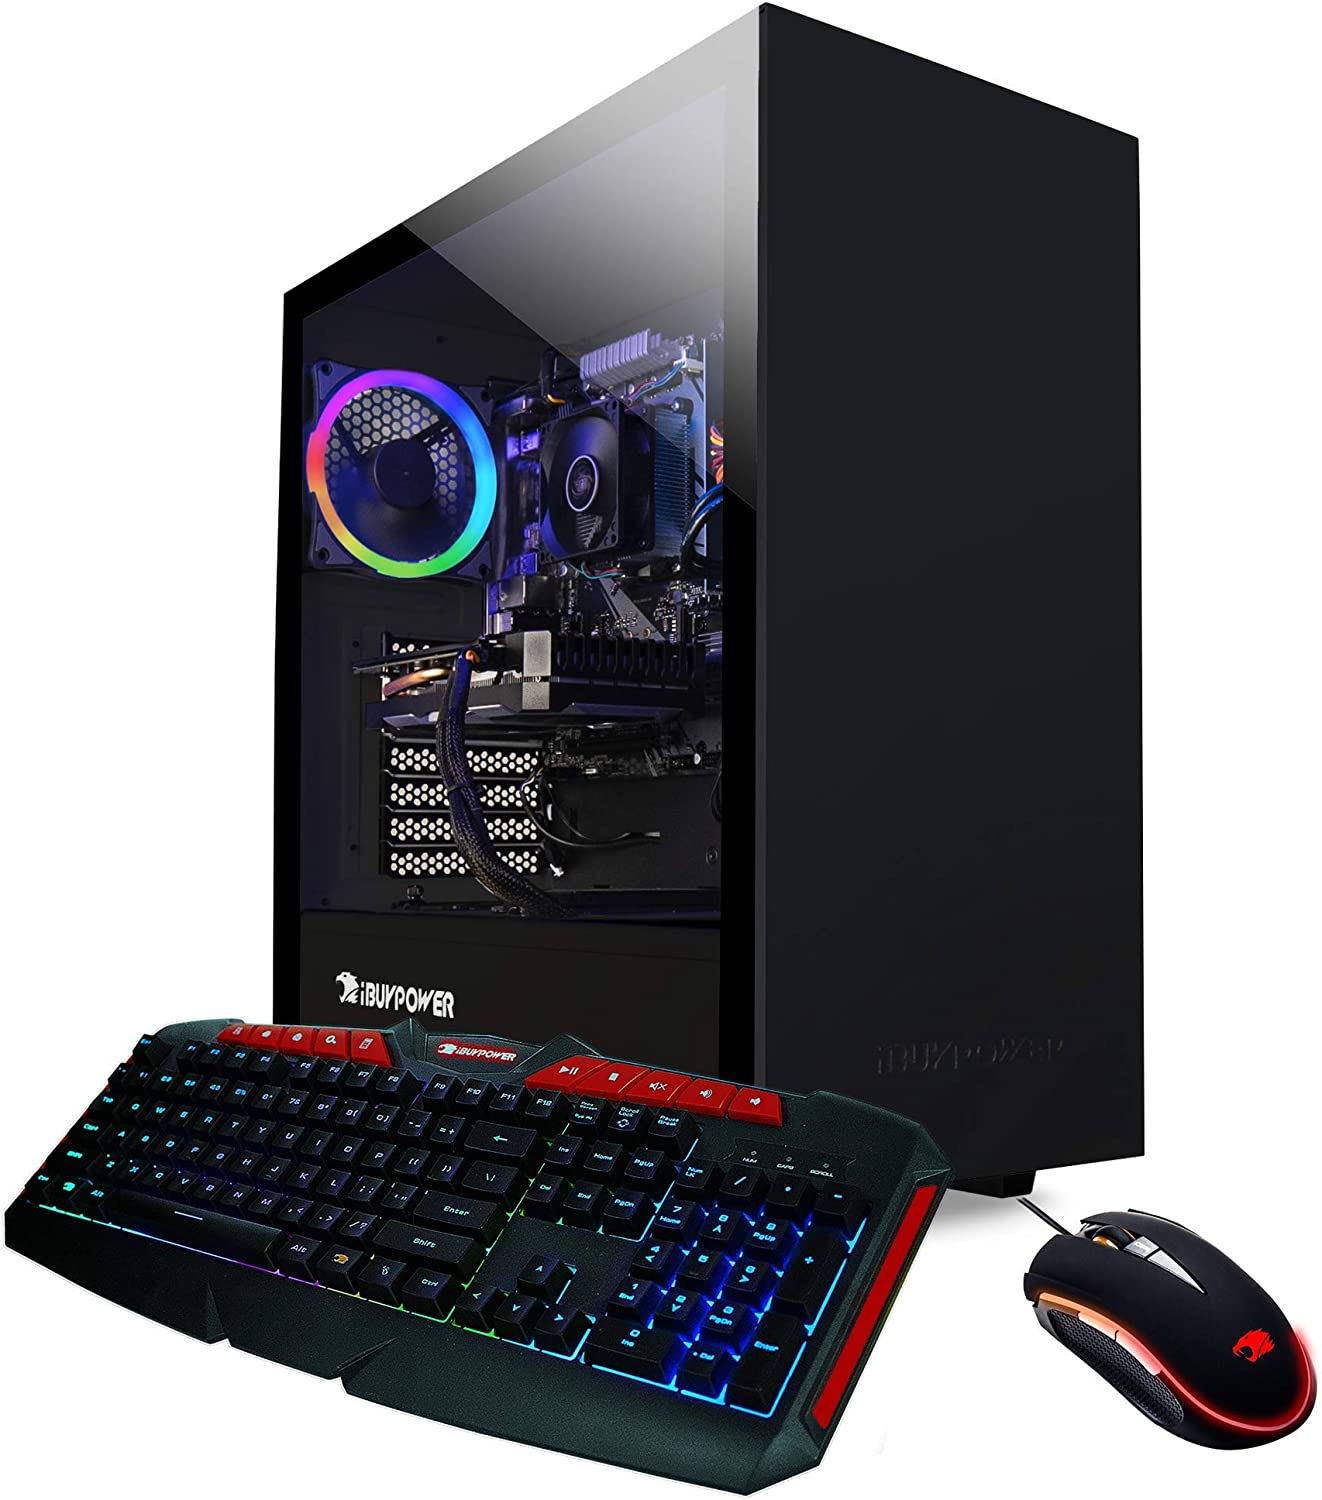 iBUYPOWER Enthusiast Gaming PC Computer Desktop ARCB 108A (AMD Ryzen 3 3200G 3.6GHz, NVIDIA Geforce GT 710 1GB, 8GB DDR4, 1TB HDD, WiFi & Windows 10) Black